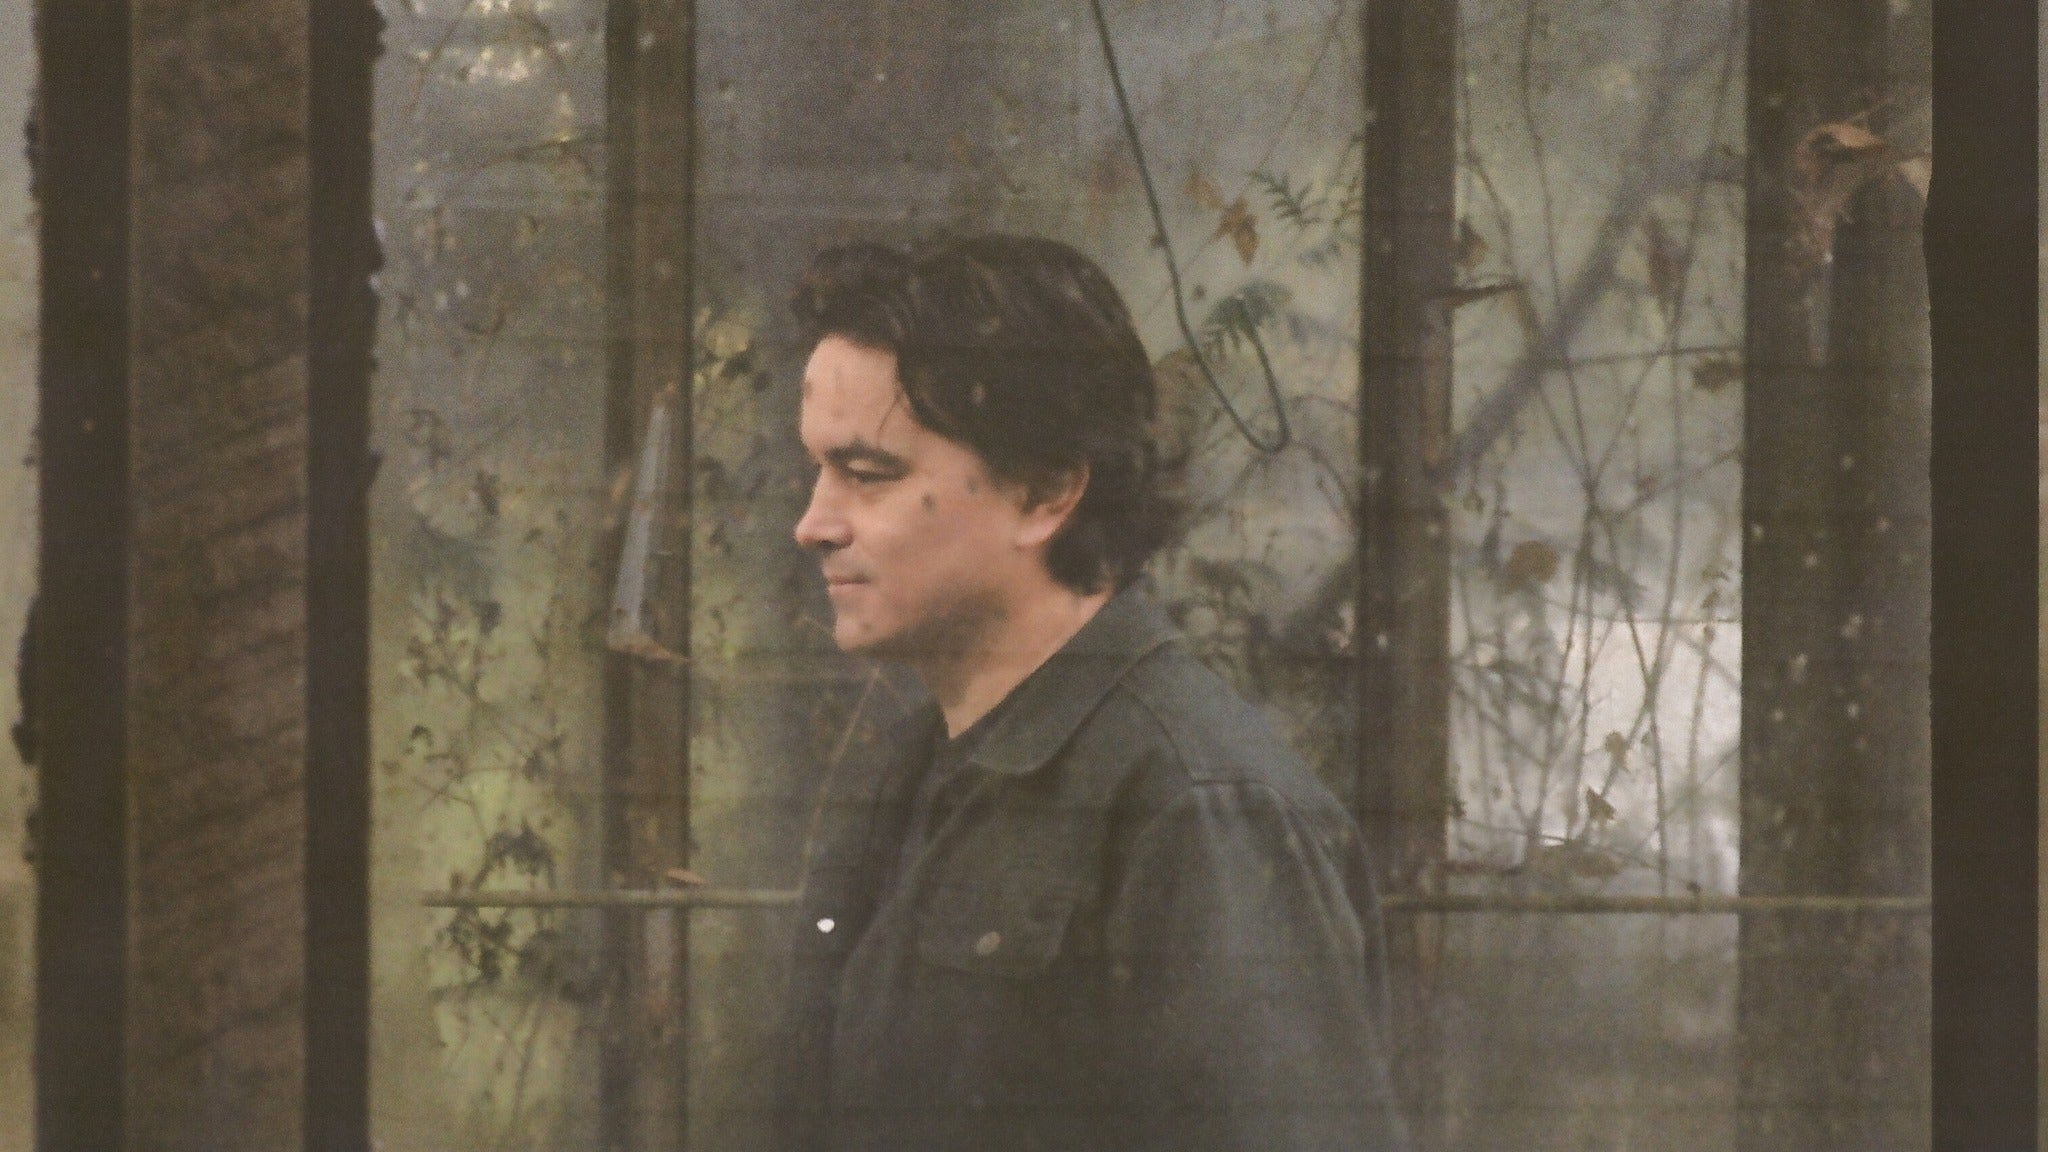 Spencer Krug (Of Moonface/Wolf Parade) with Special Guest Light Conduc